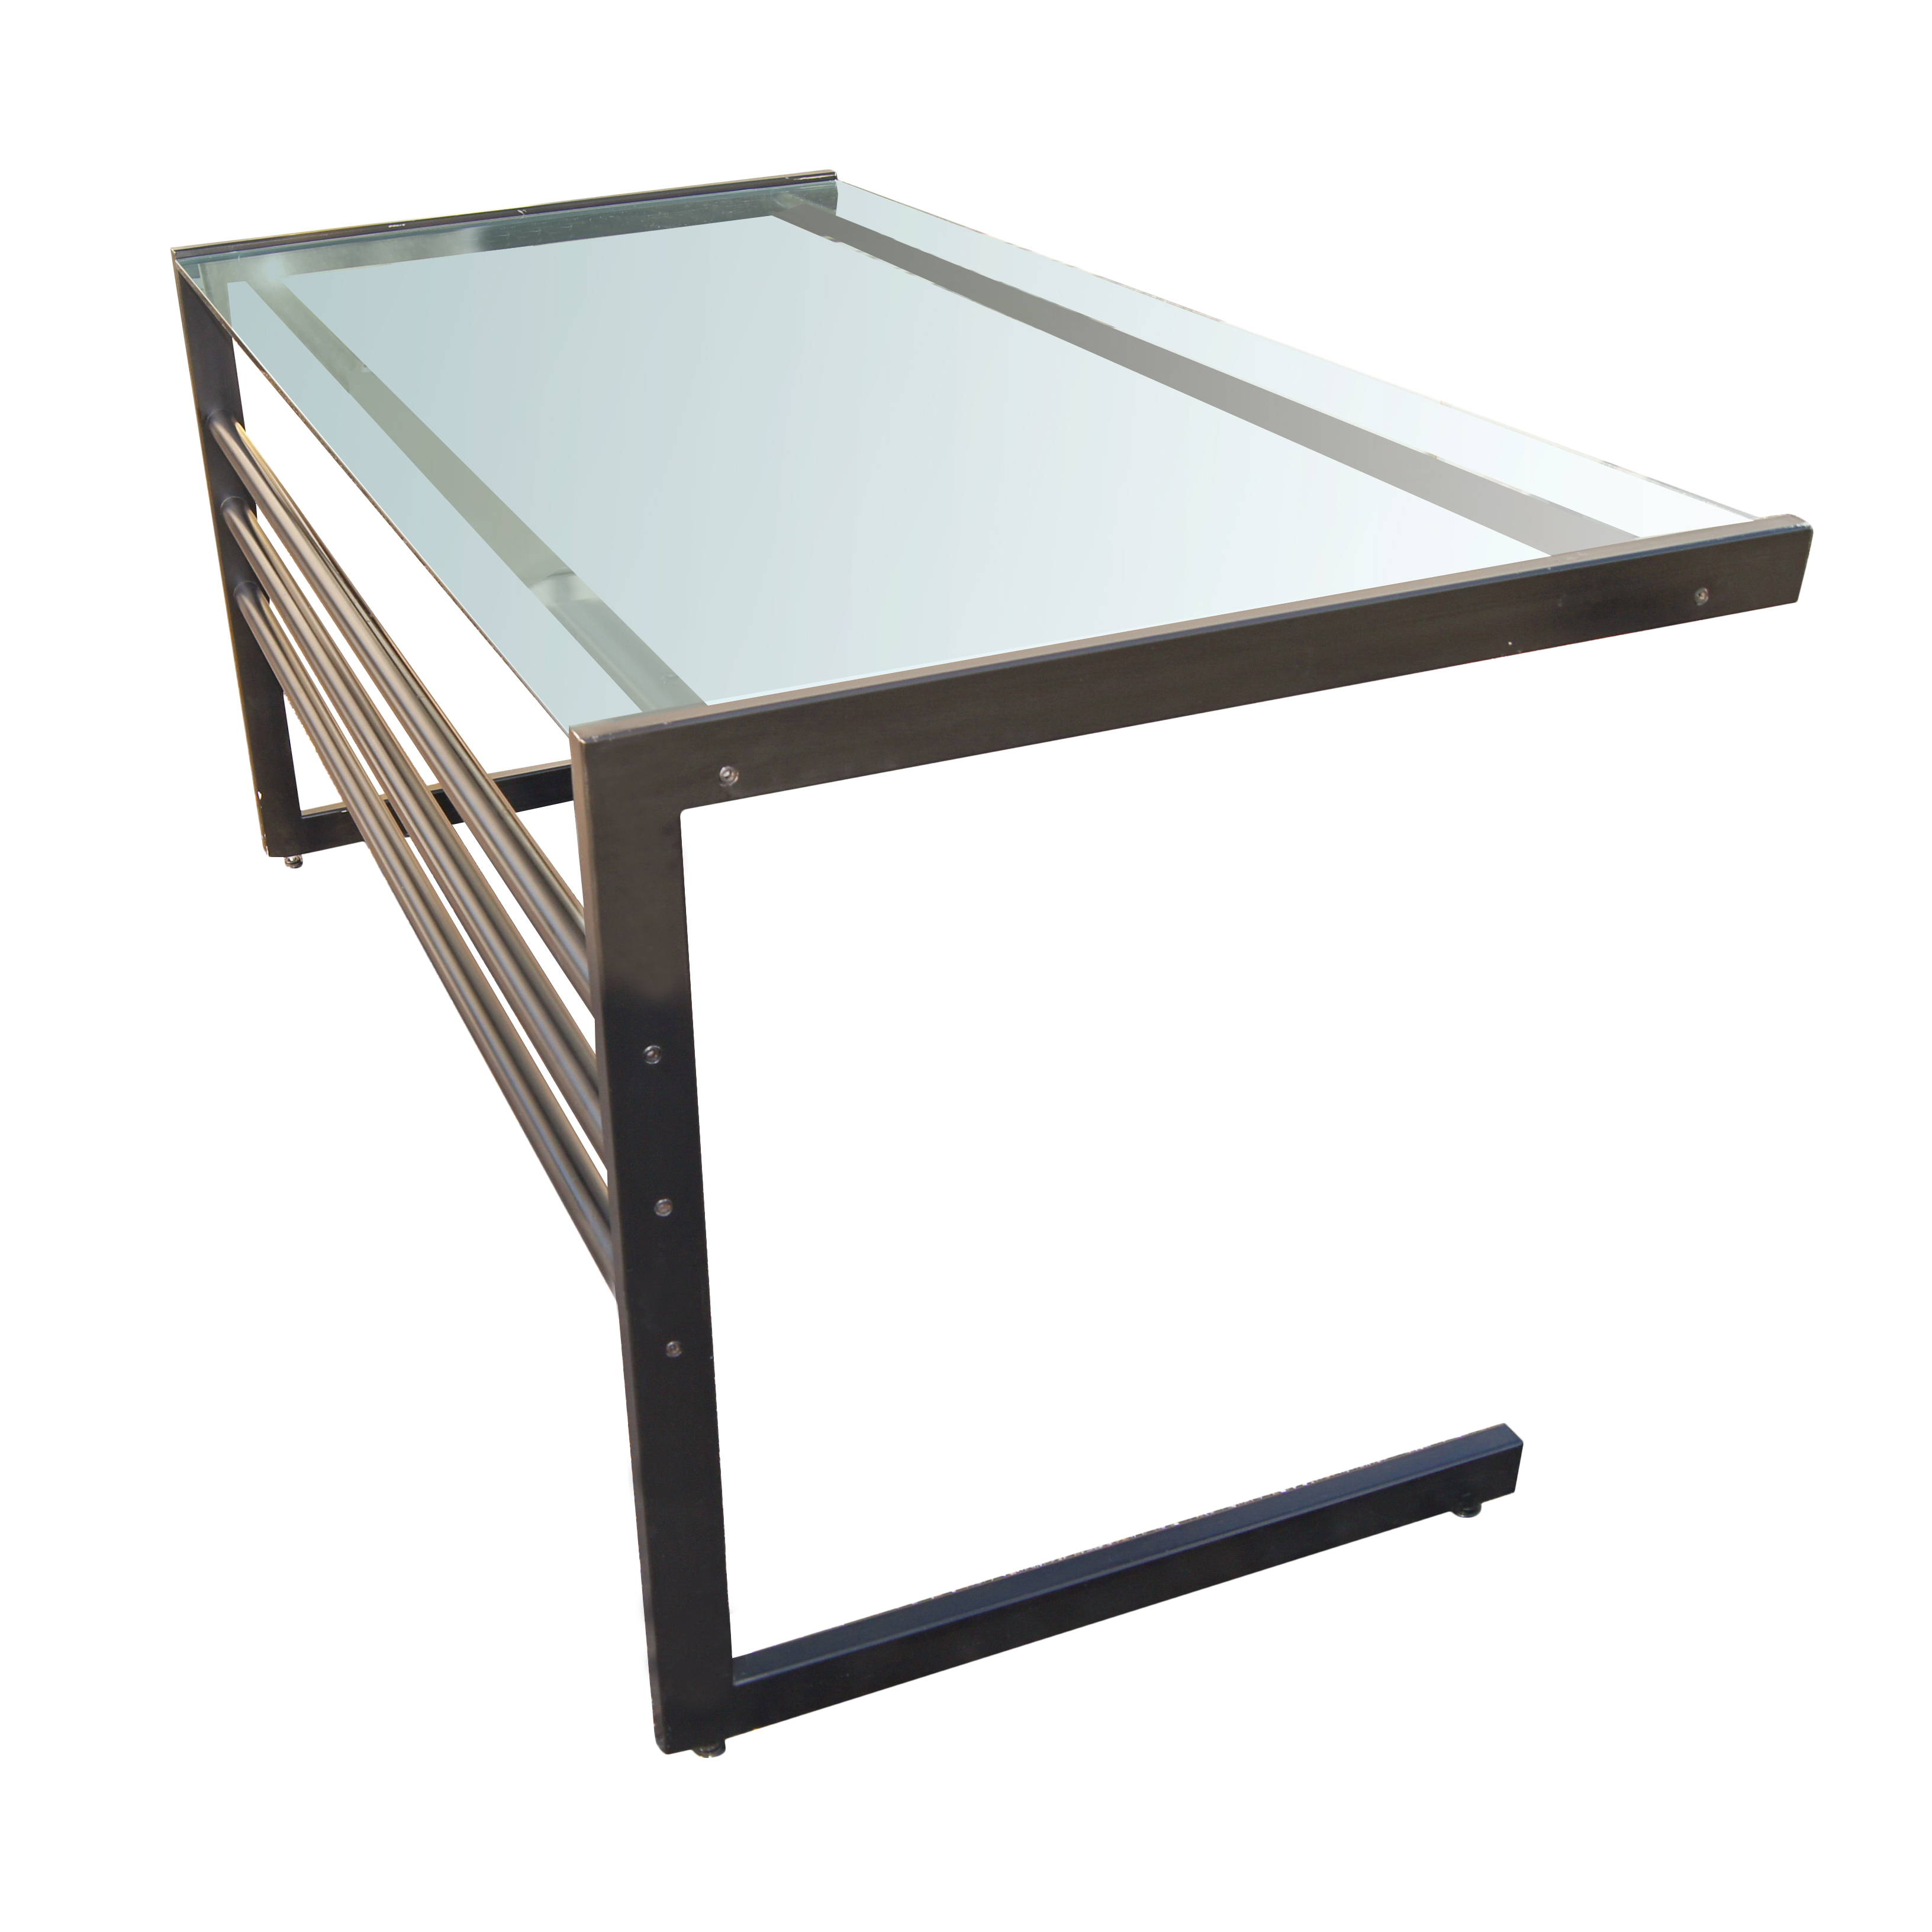 Ikea glass table desk - Metal And Glass Computer Desk Modern Metal Base Rectangular Glass